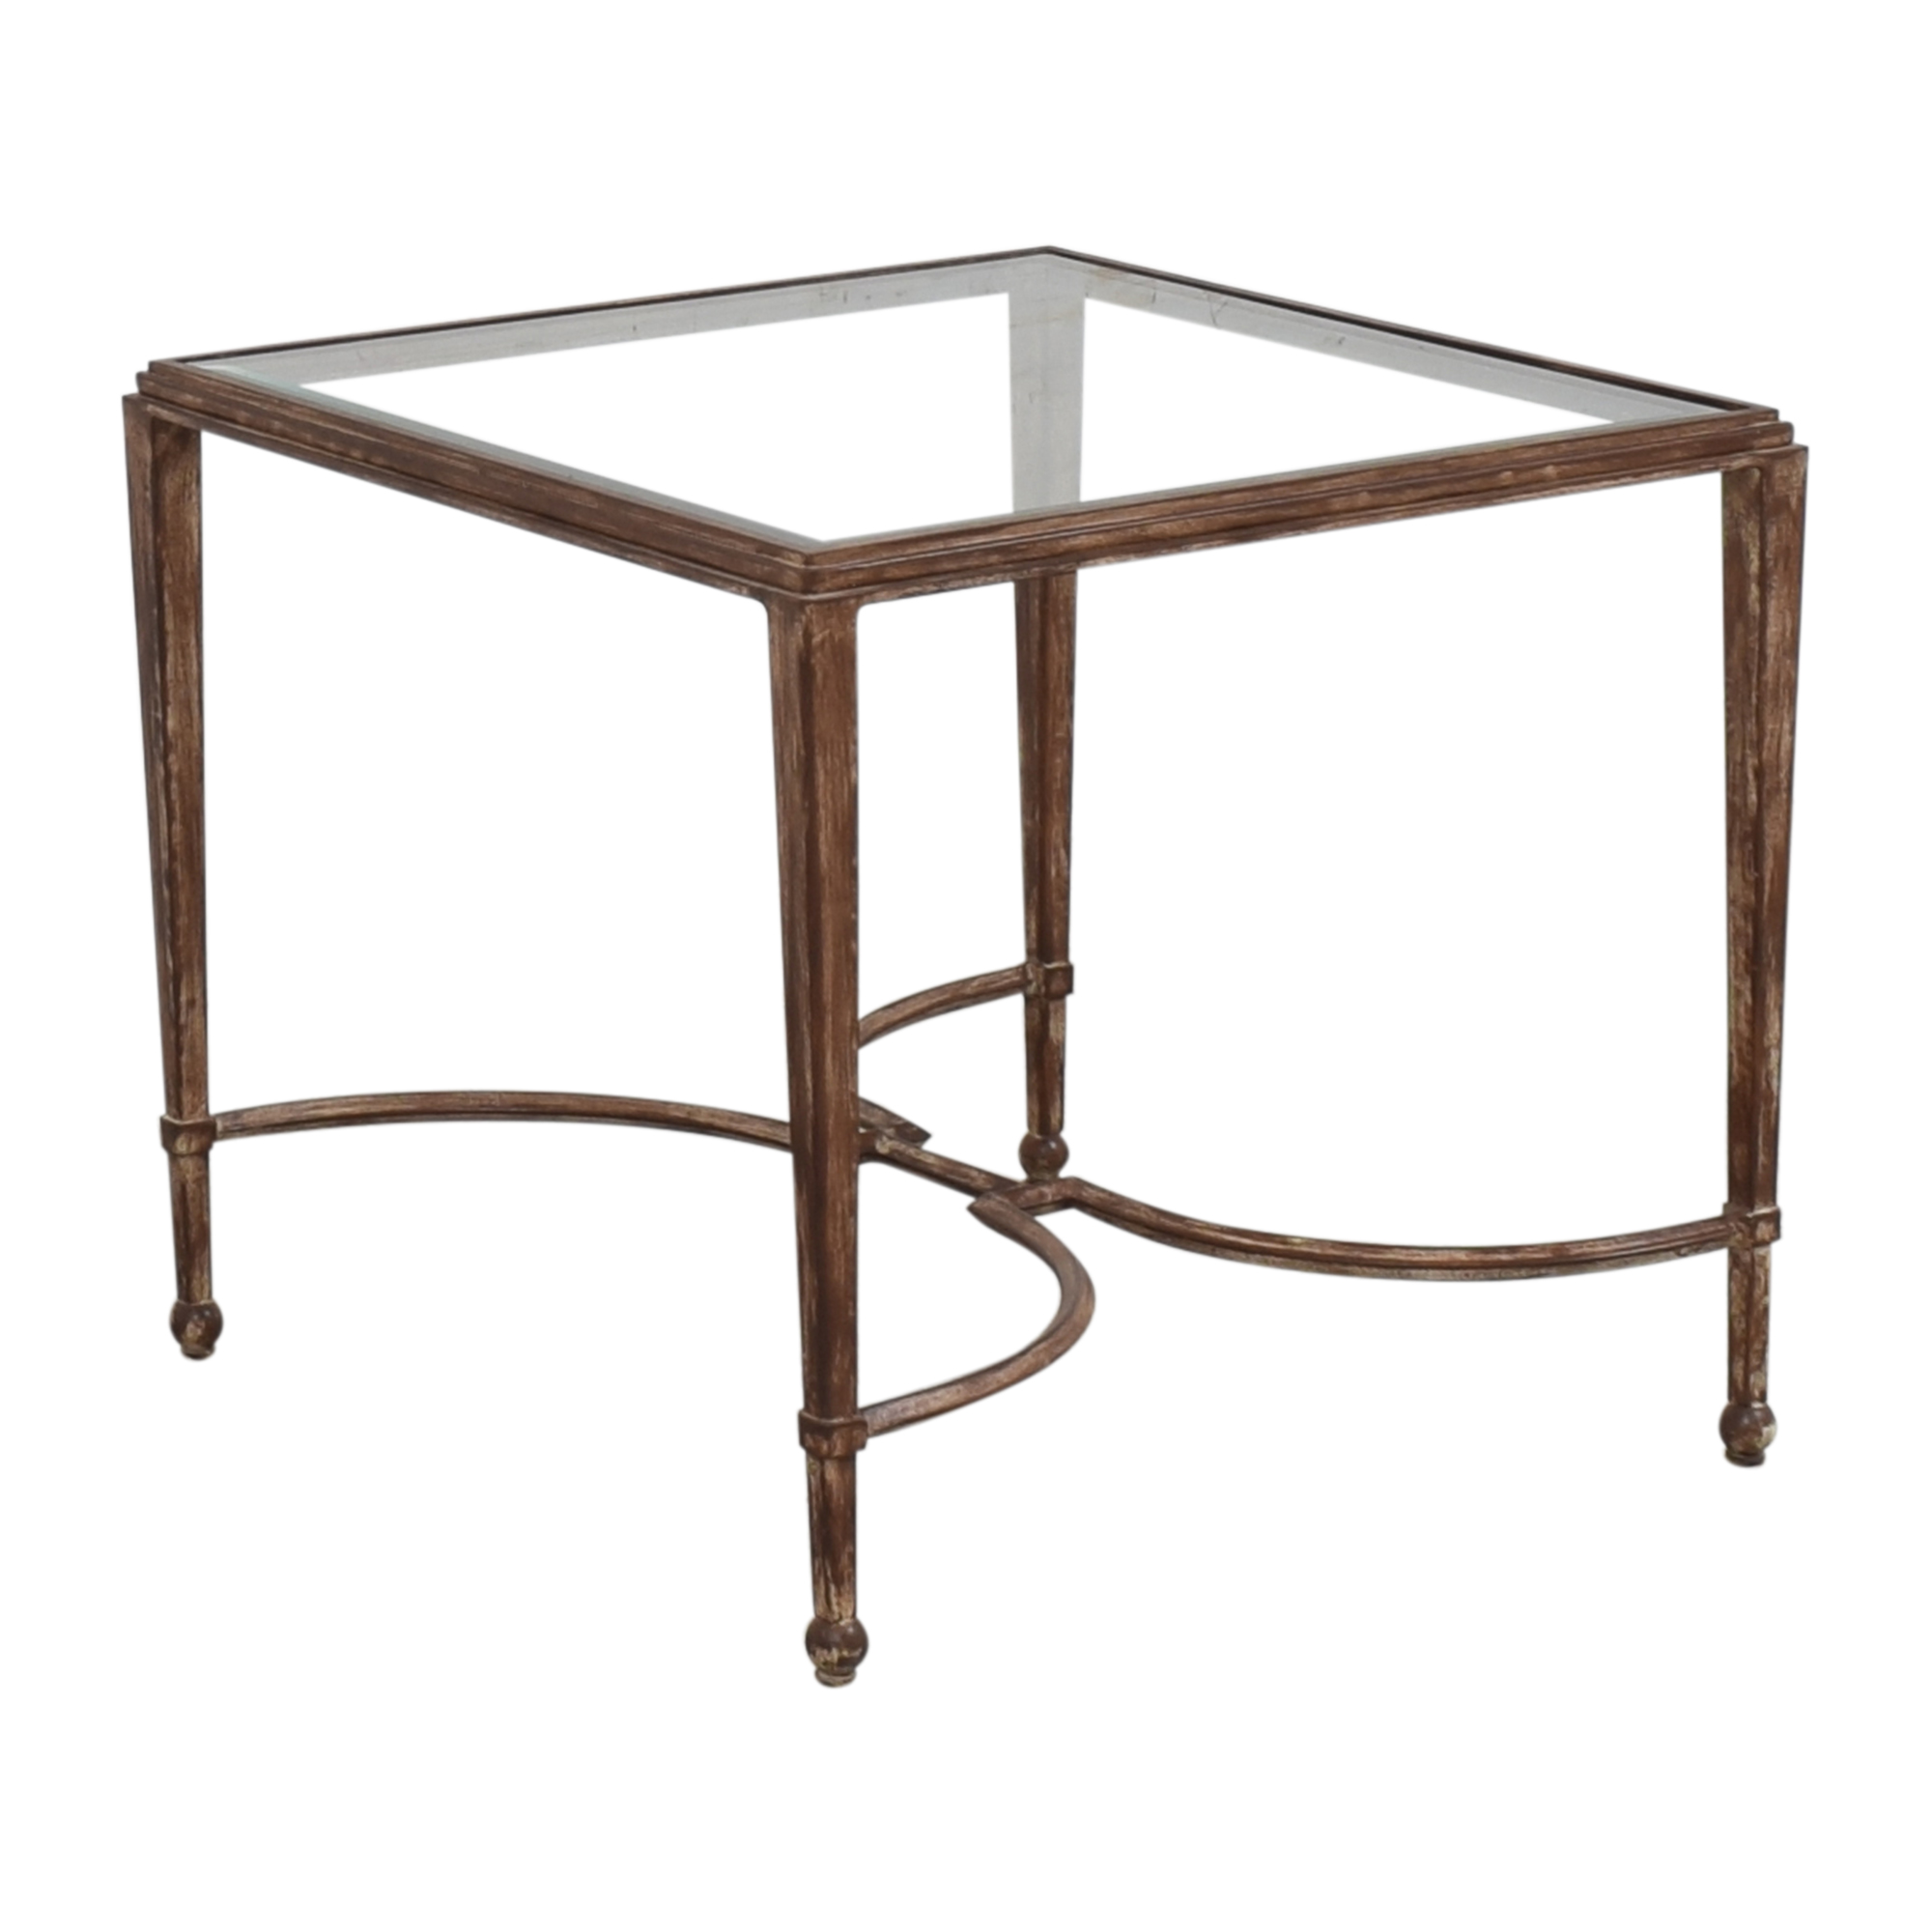 CTH Sherrill Occasional Furniture CTH Sherrill Occasional Accent Table dimensions